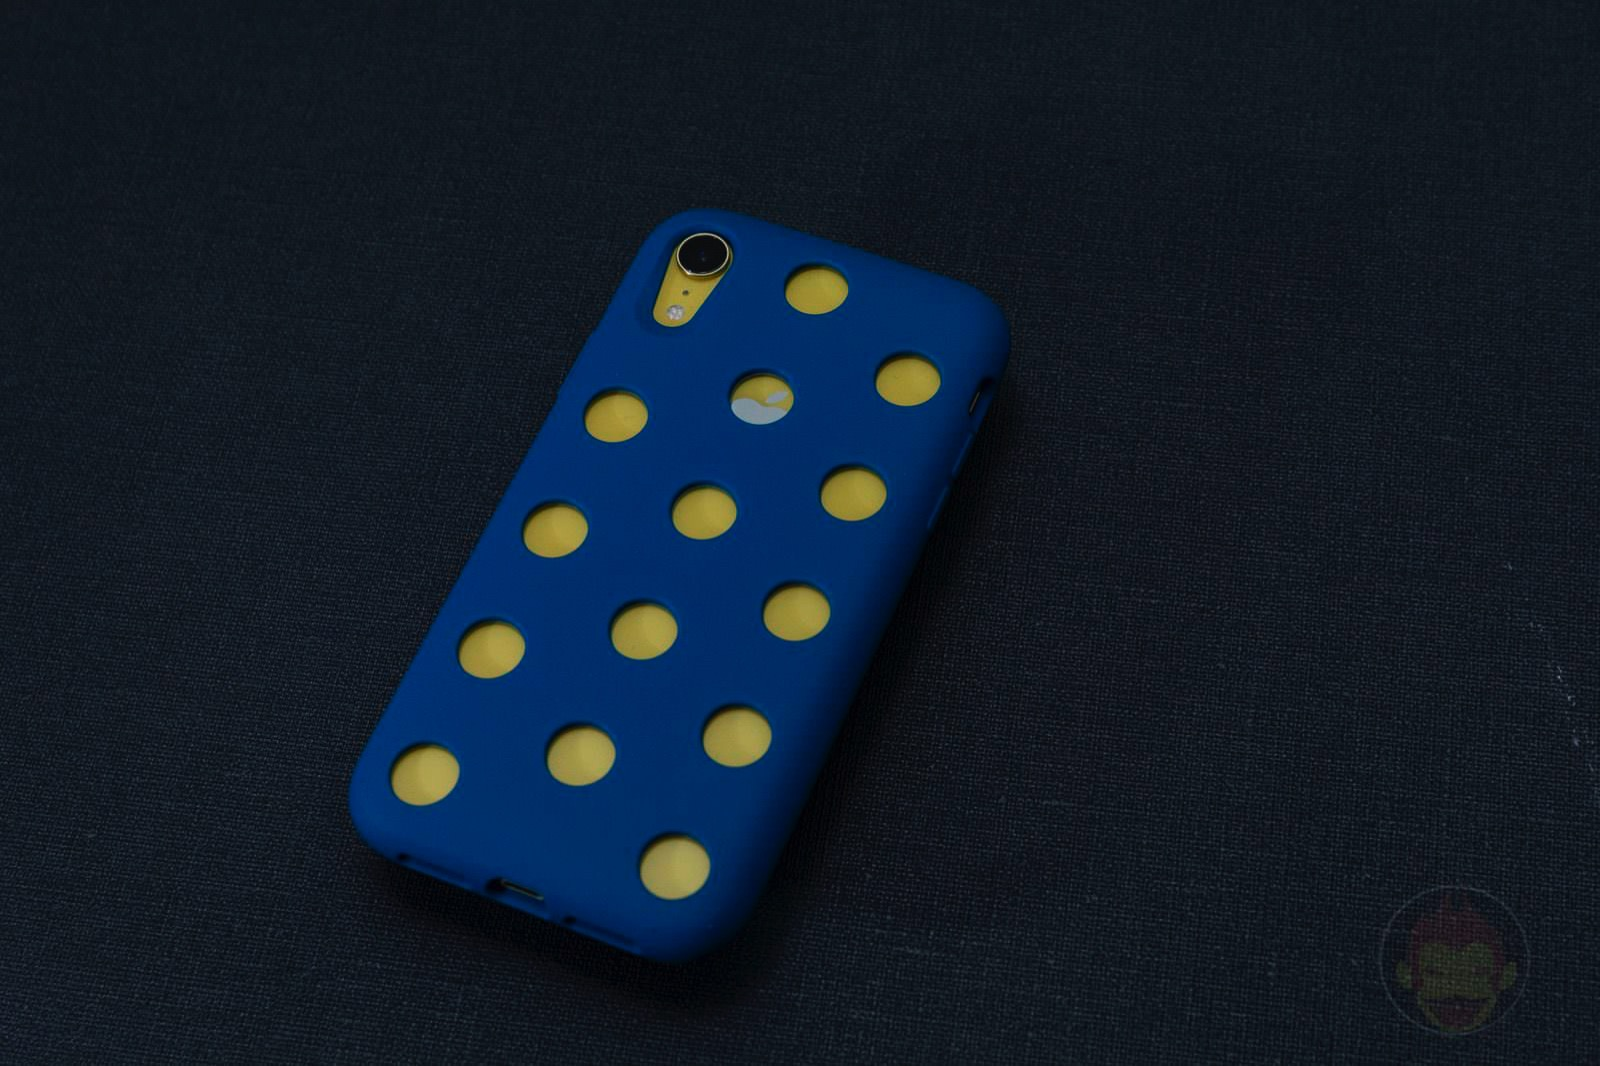 AndMesh-Layer-Case-for-iPhone-01.jpg